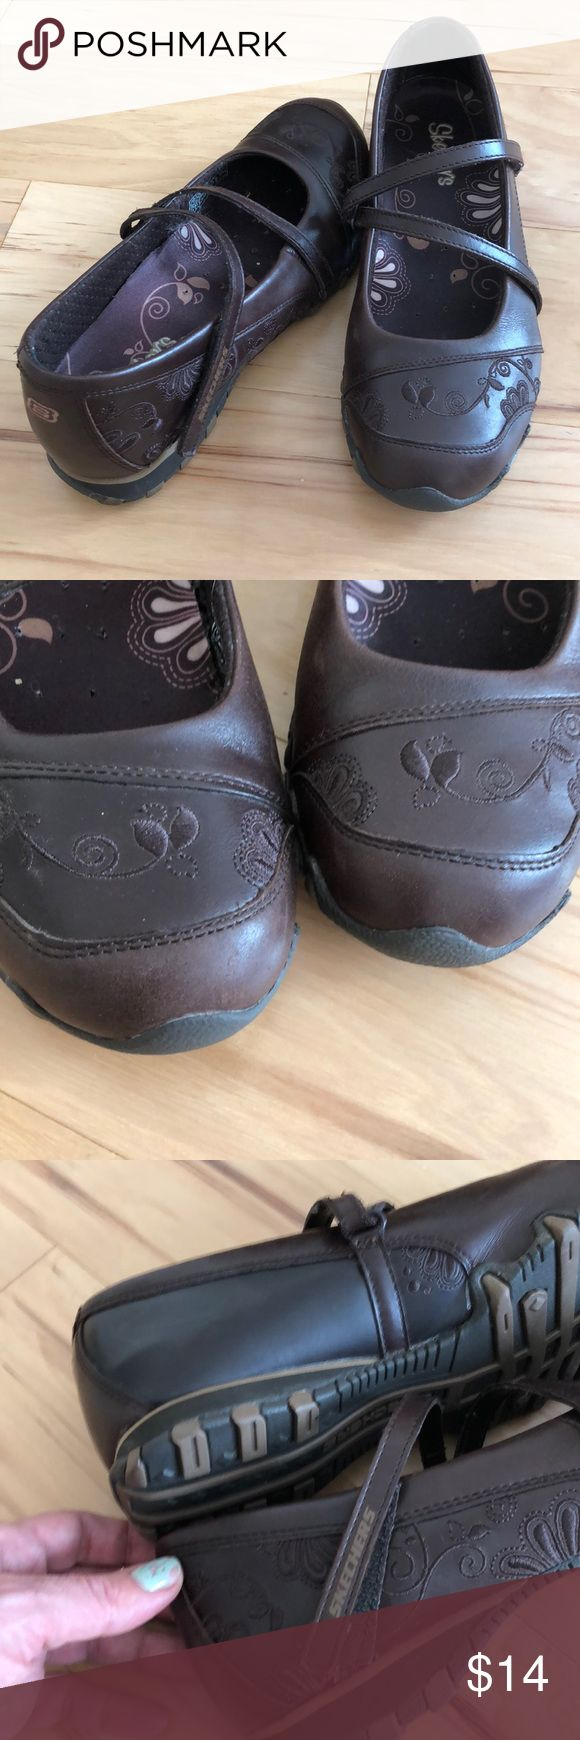 SKECHERS SLIP ON SHOES Very cute pair if Skechers. In great condition. True to size. There is an arrow symbol on the left side of the left foot as shown in the picture, but it does not show because it's in the left side. Other than that, no flaws. Skechers Shoes Flats & Loafers